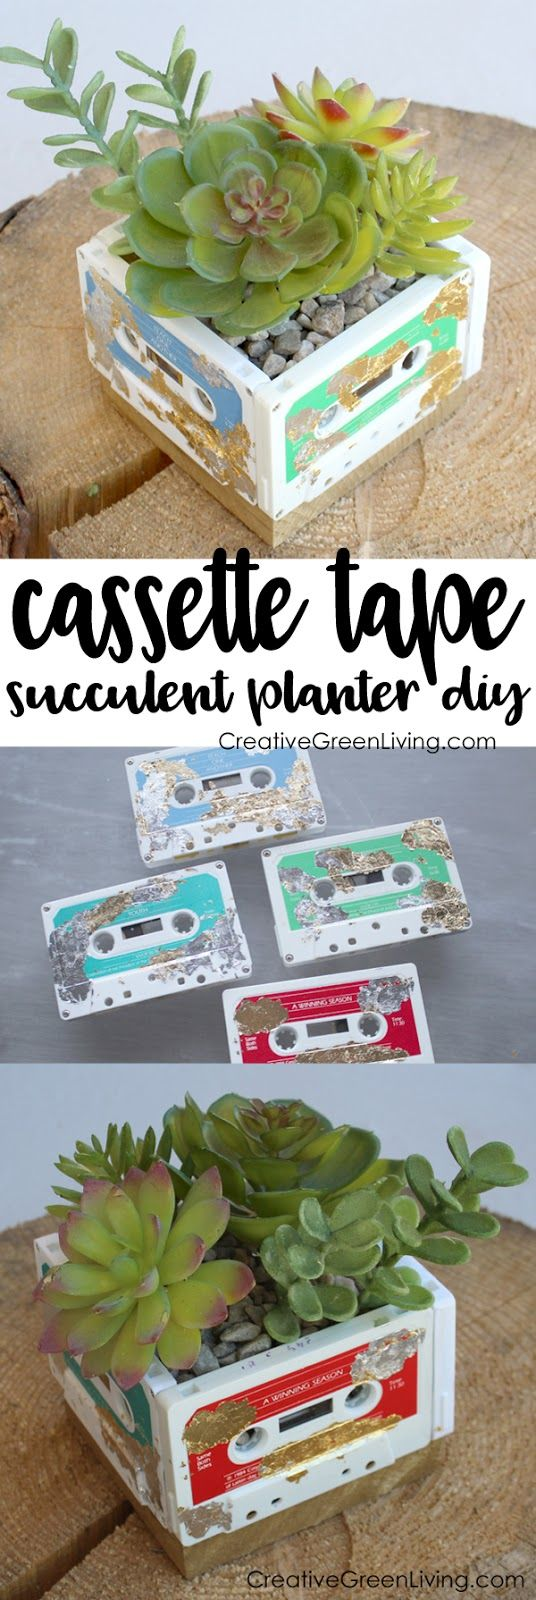 Make a Recycled Cassette Tape Succulent Planter – Our Fairfield Home & Garden